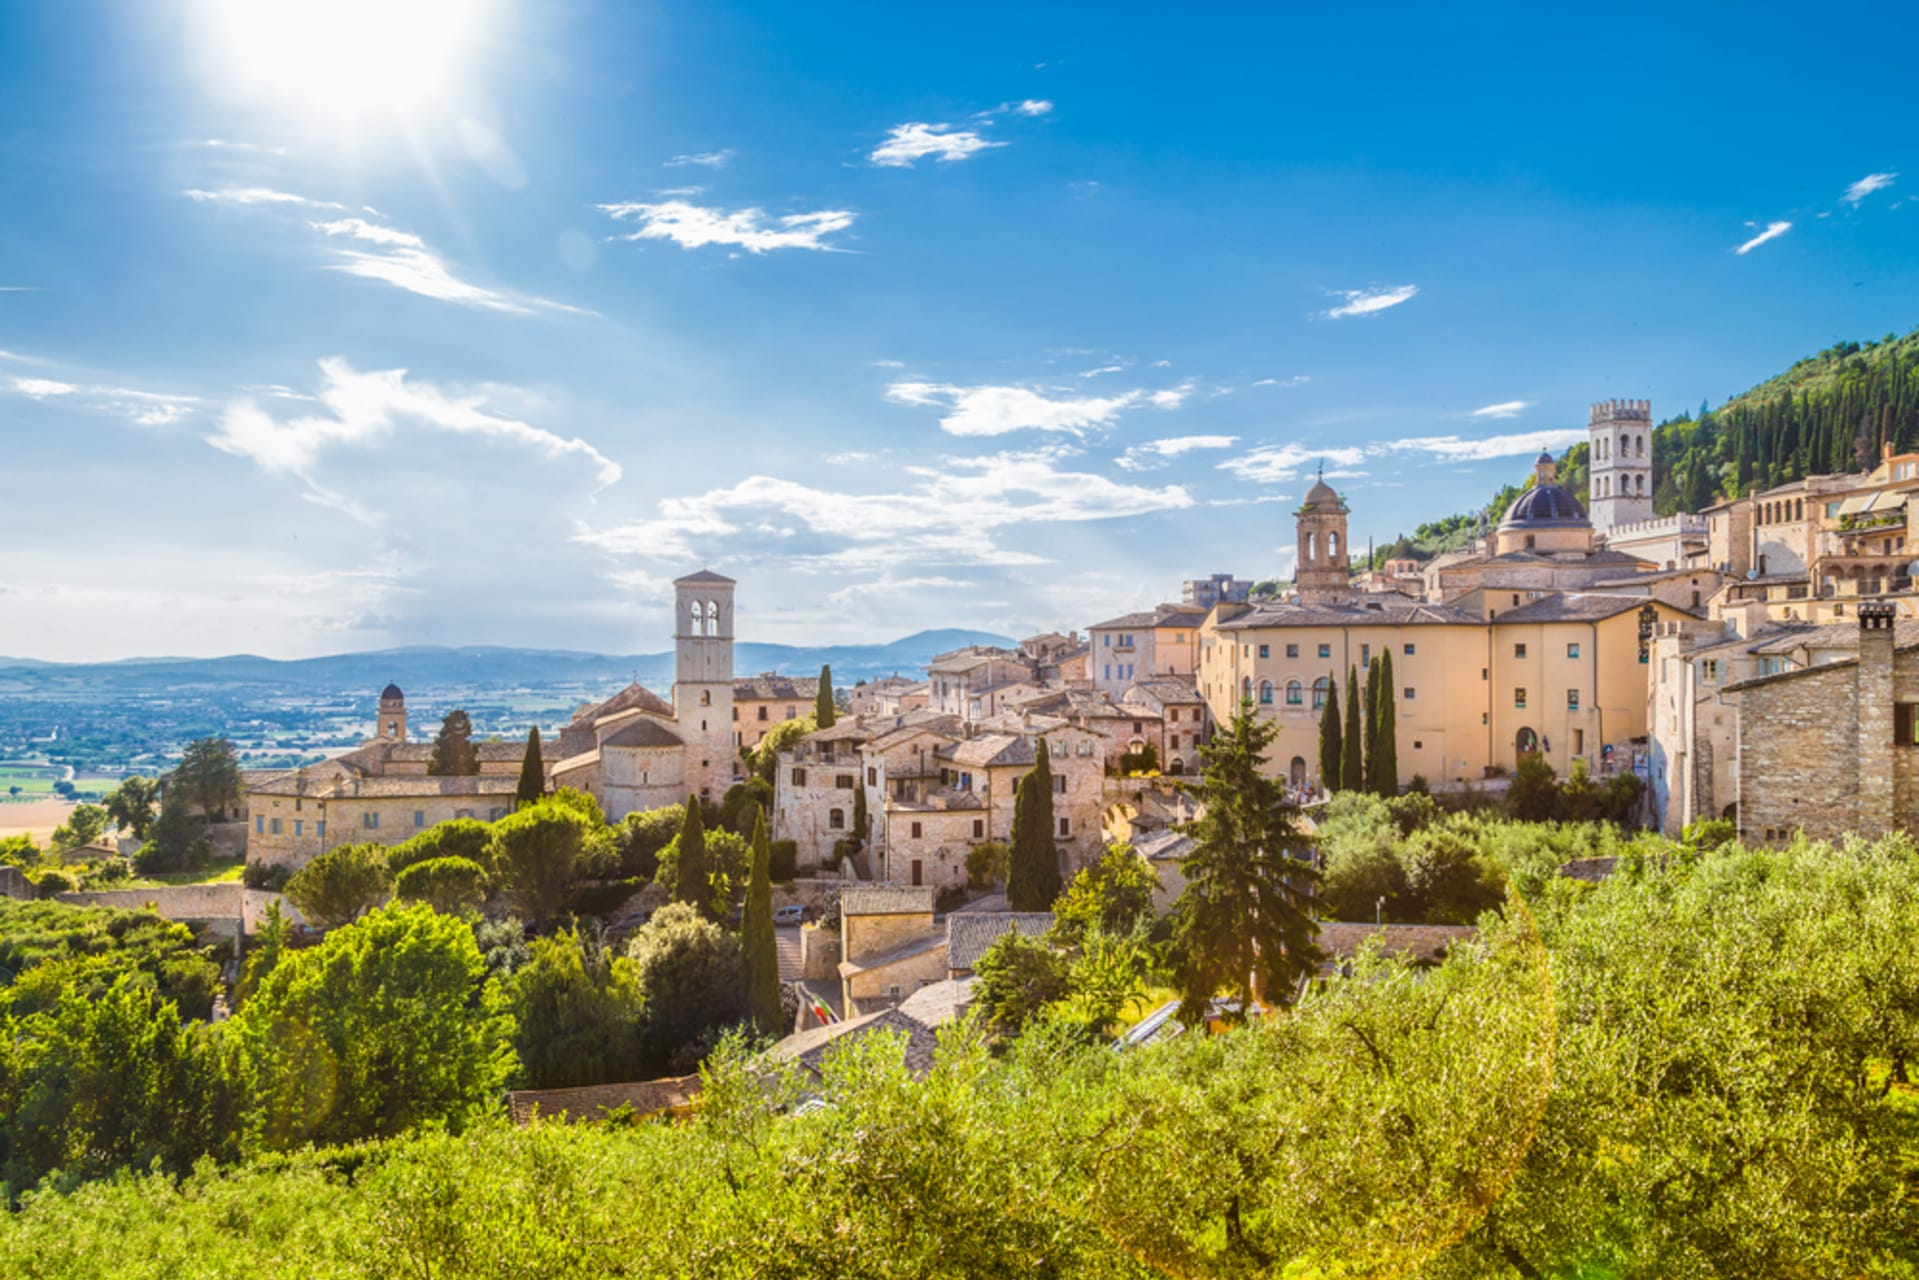 Assisi cover image